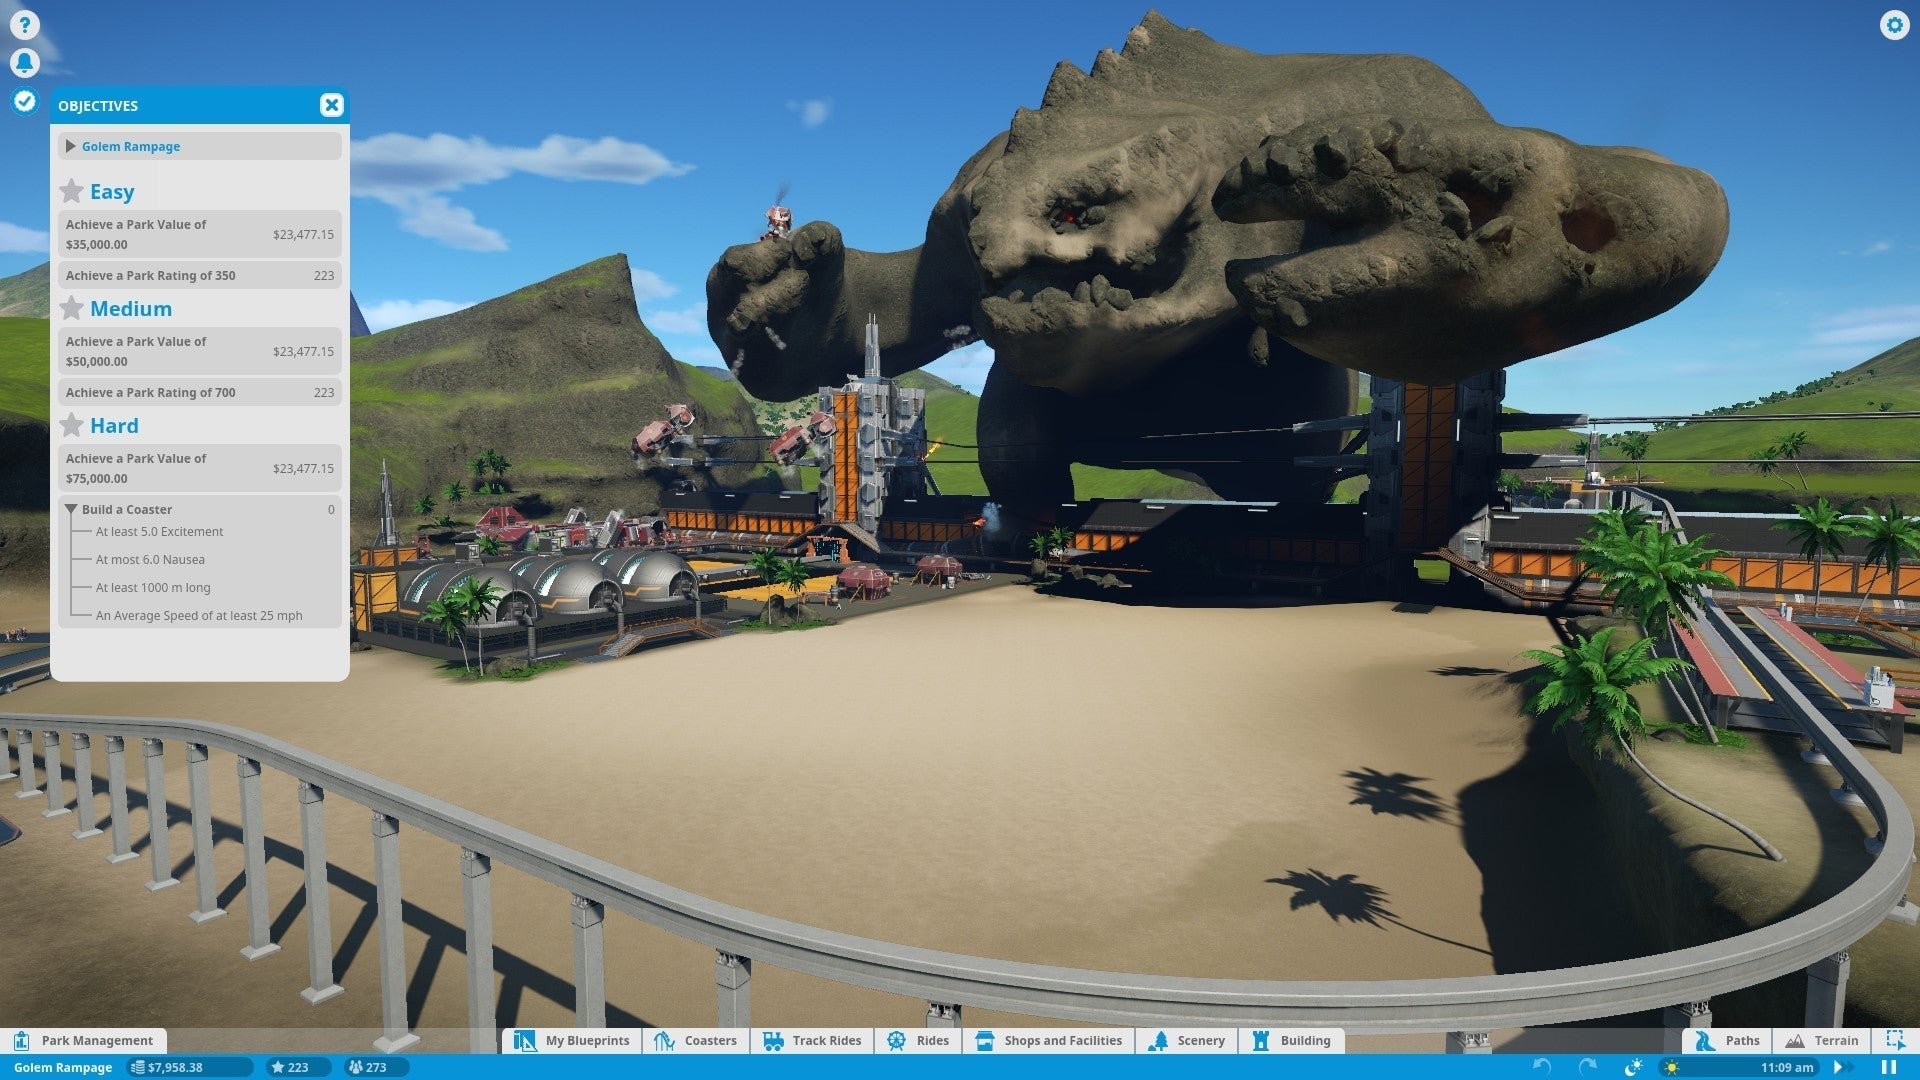 Planet Coaster review: This joyful theme park builder offers